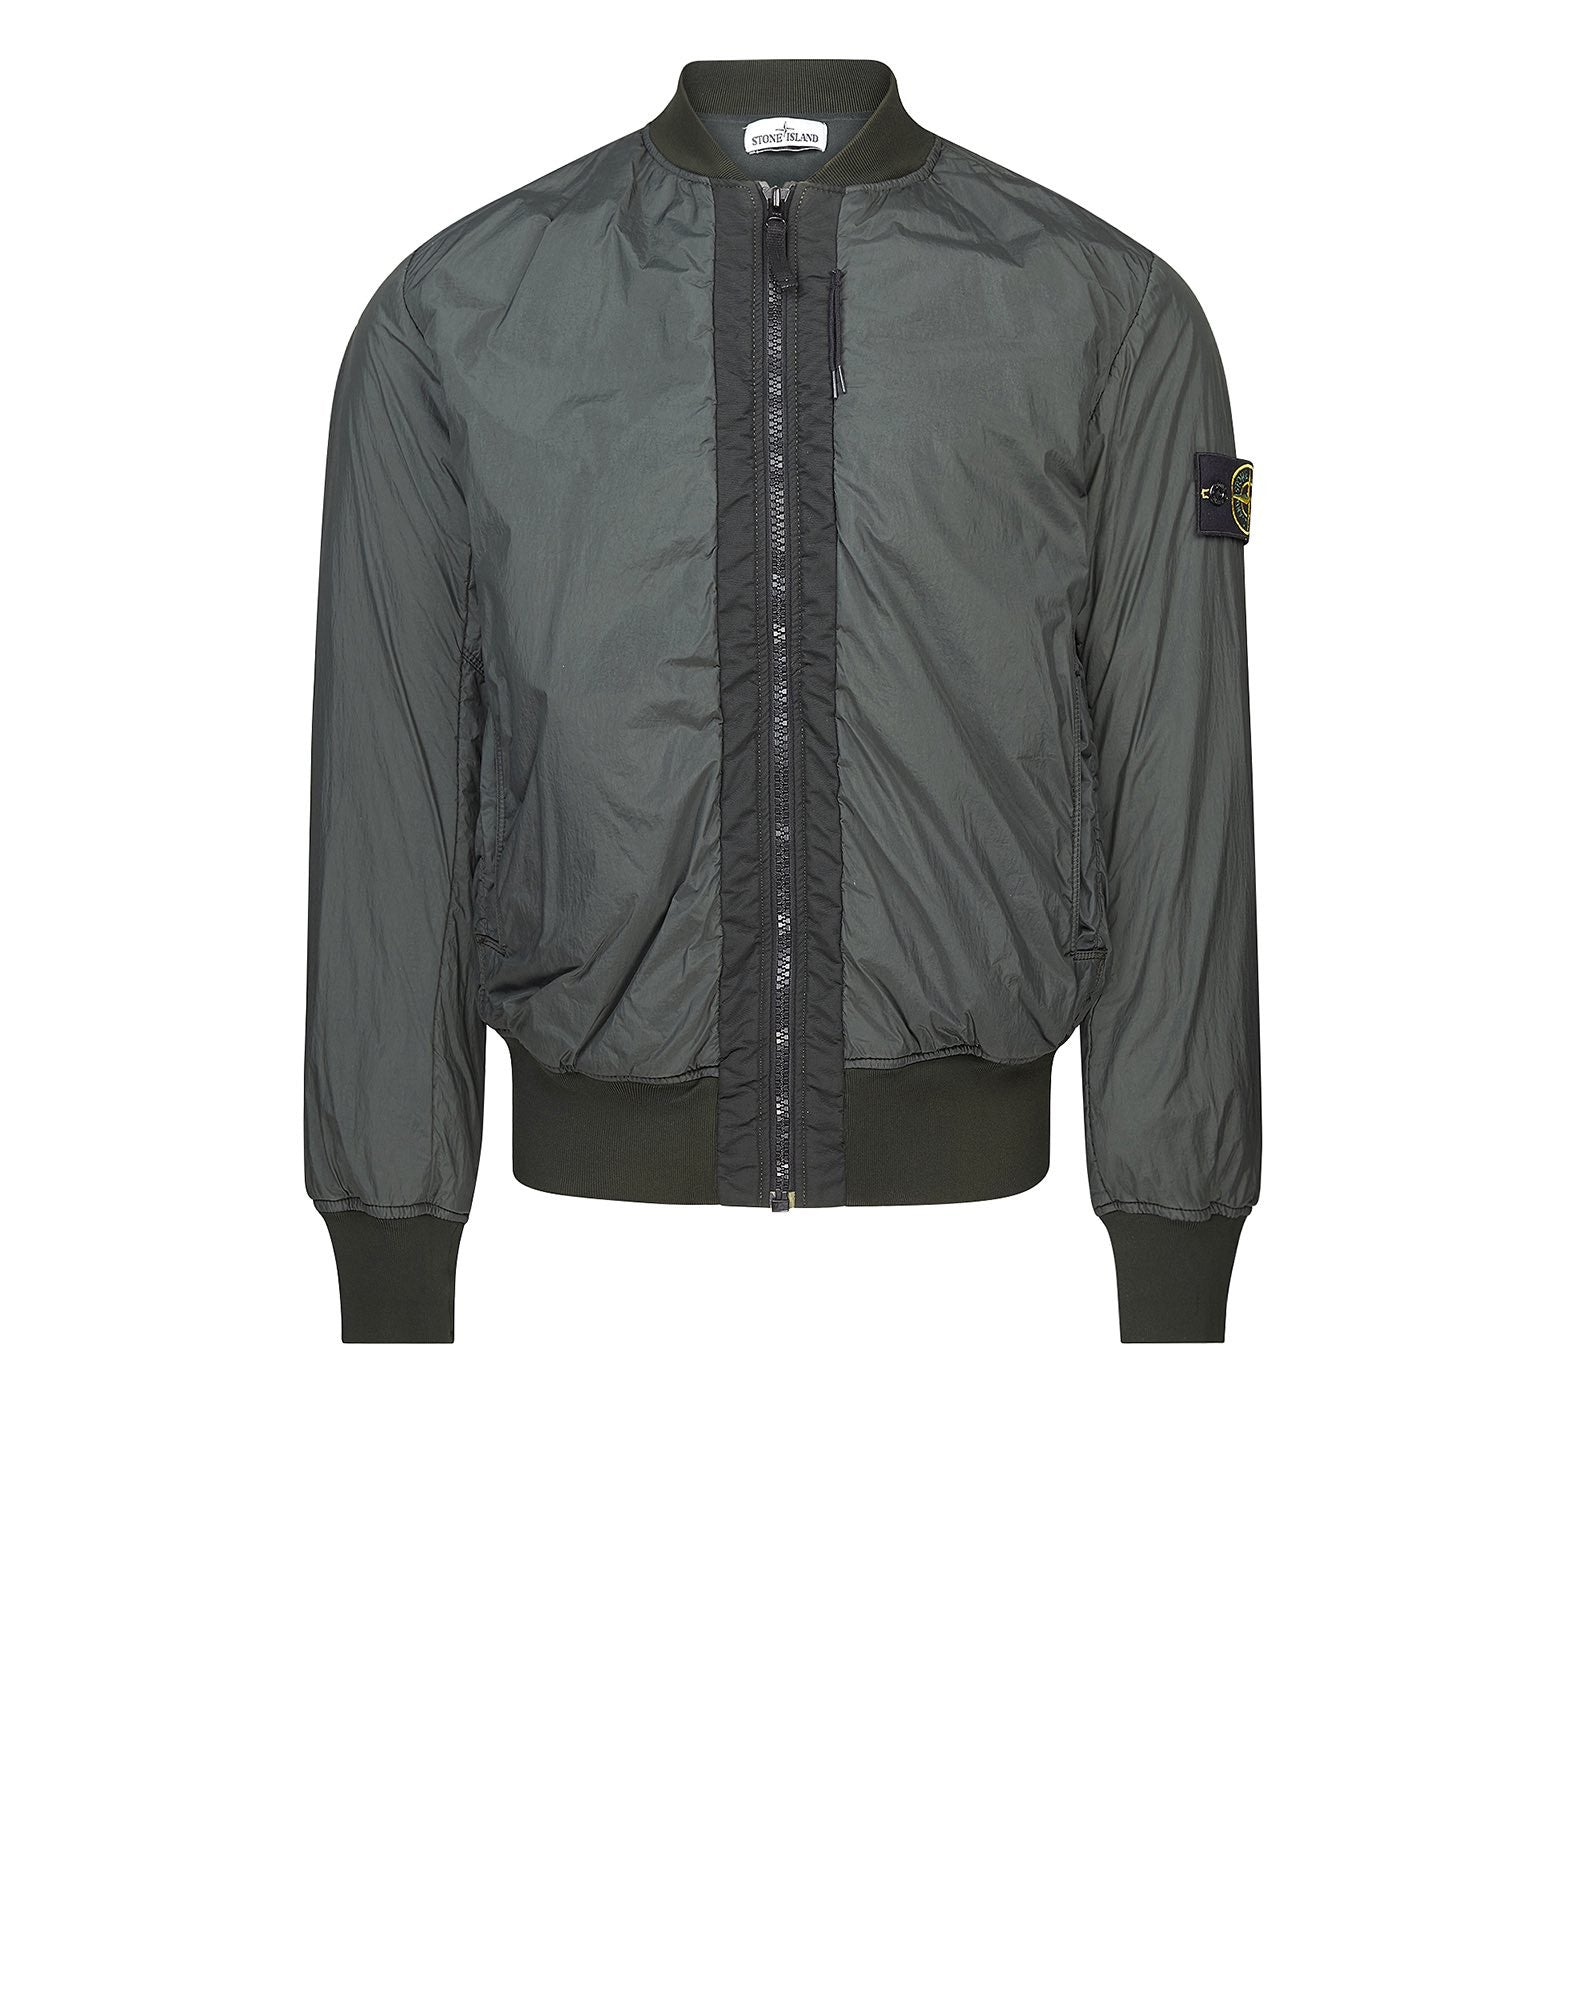 Q0923 Bomber in Green